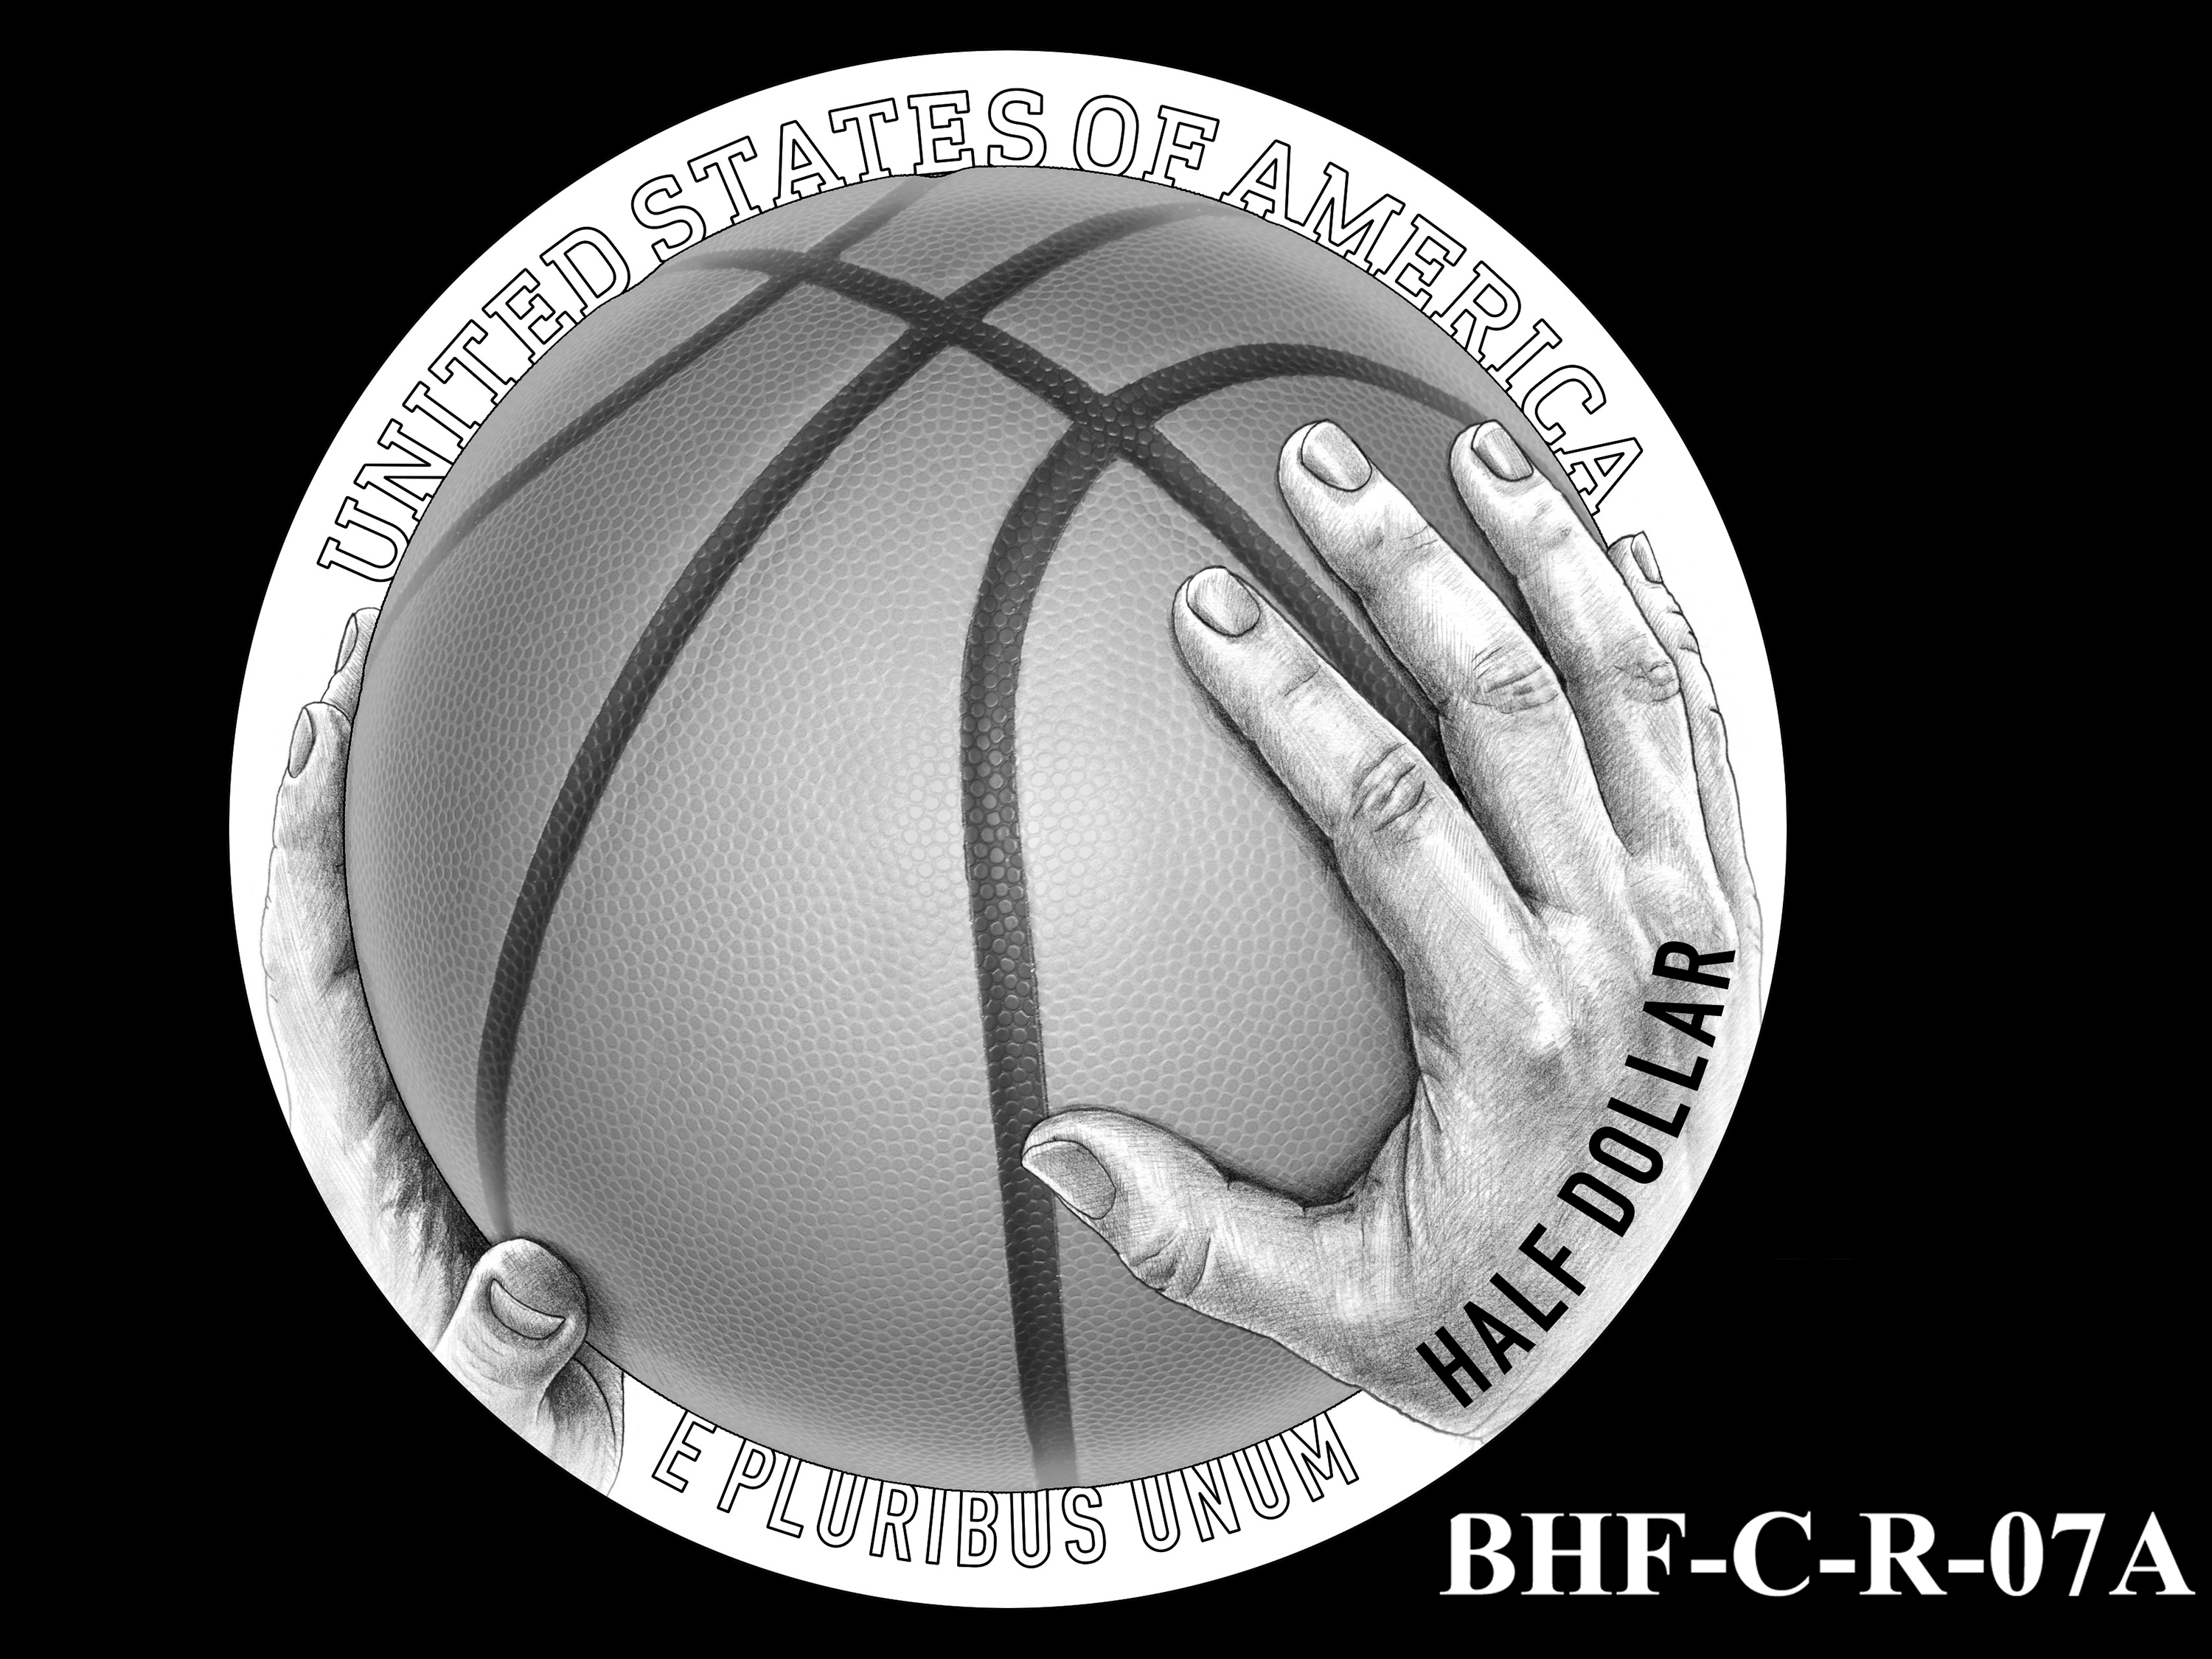 BHF-C-R-07A -- 2020 Basketball Hall of Fame Commemorative Coin Program - Clad Reverse